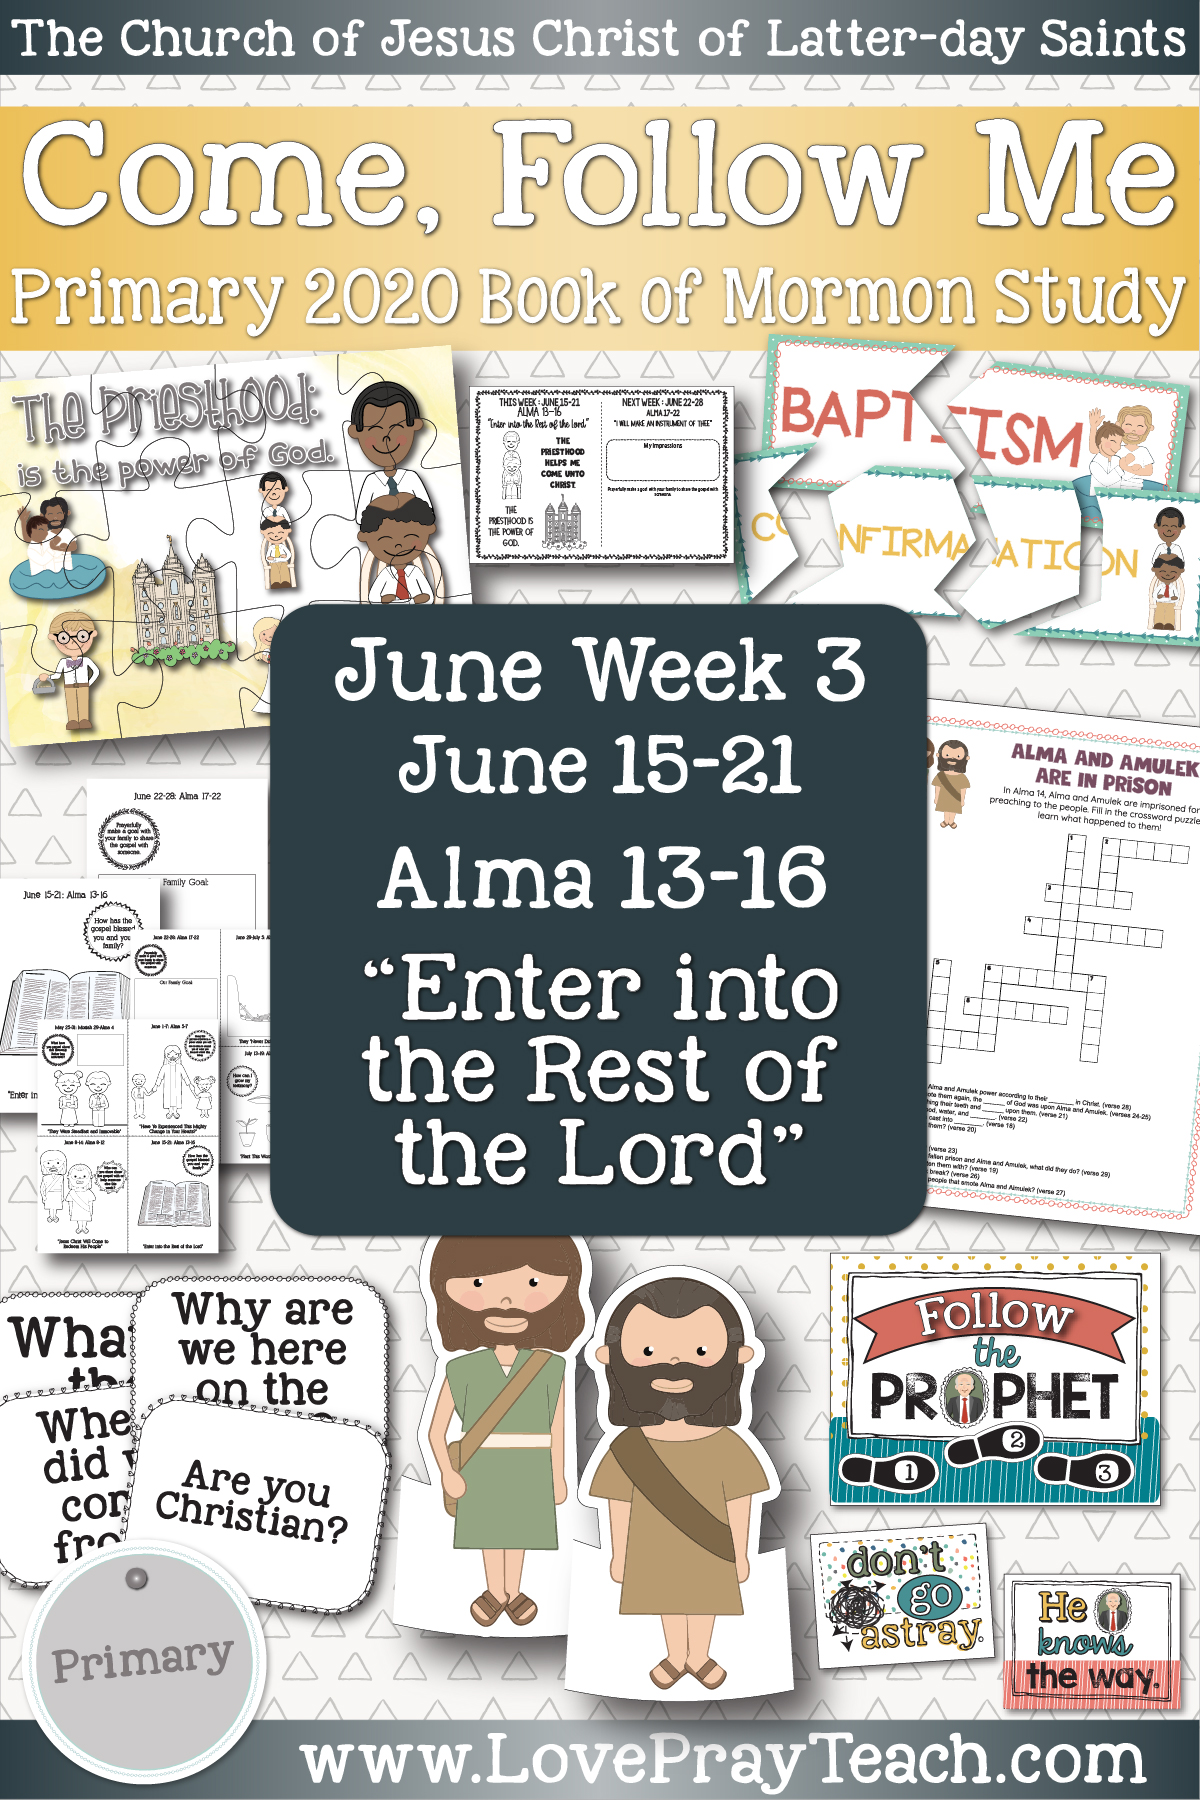 "Come, Follow Me for Primary June Week 3: June 15-21 Alma 13-16 ""Enter into the Rest of the Lord"" www.LovePrayTeach.com"